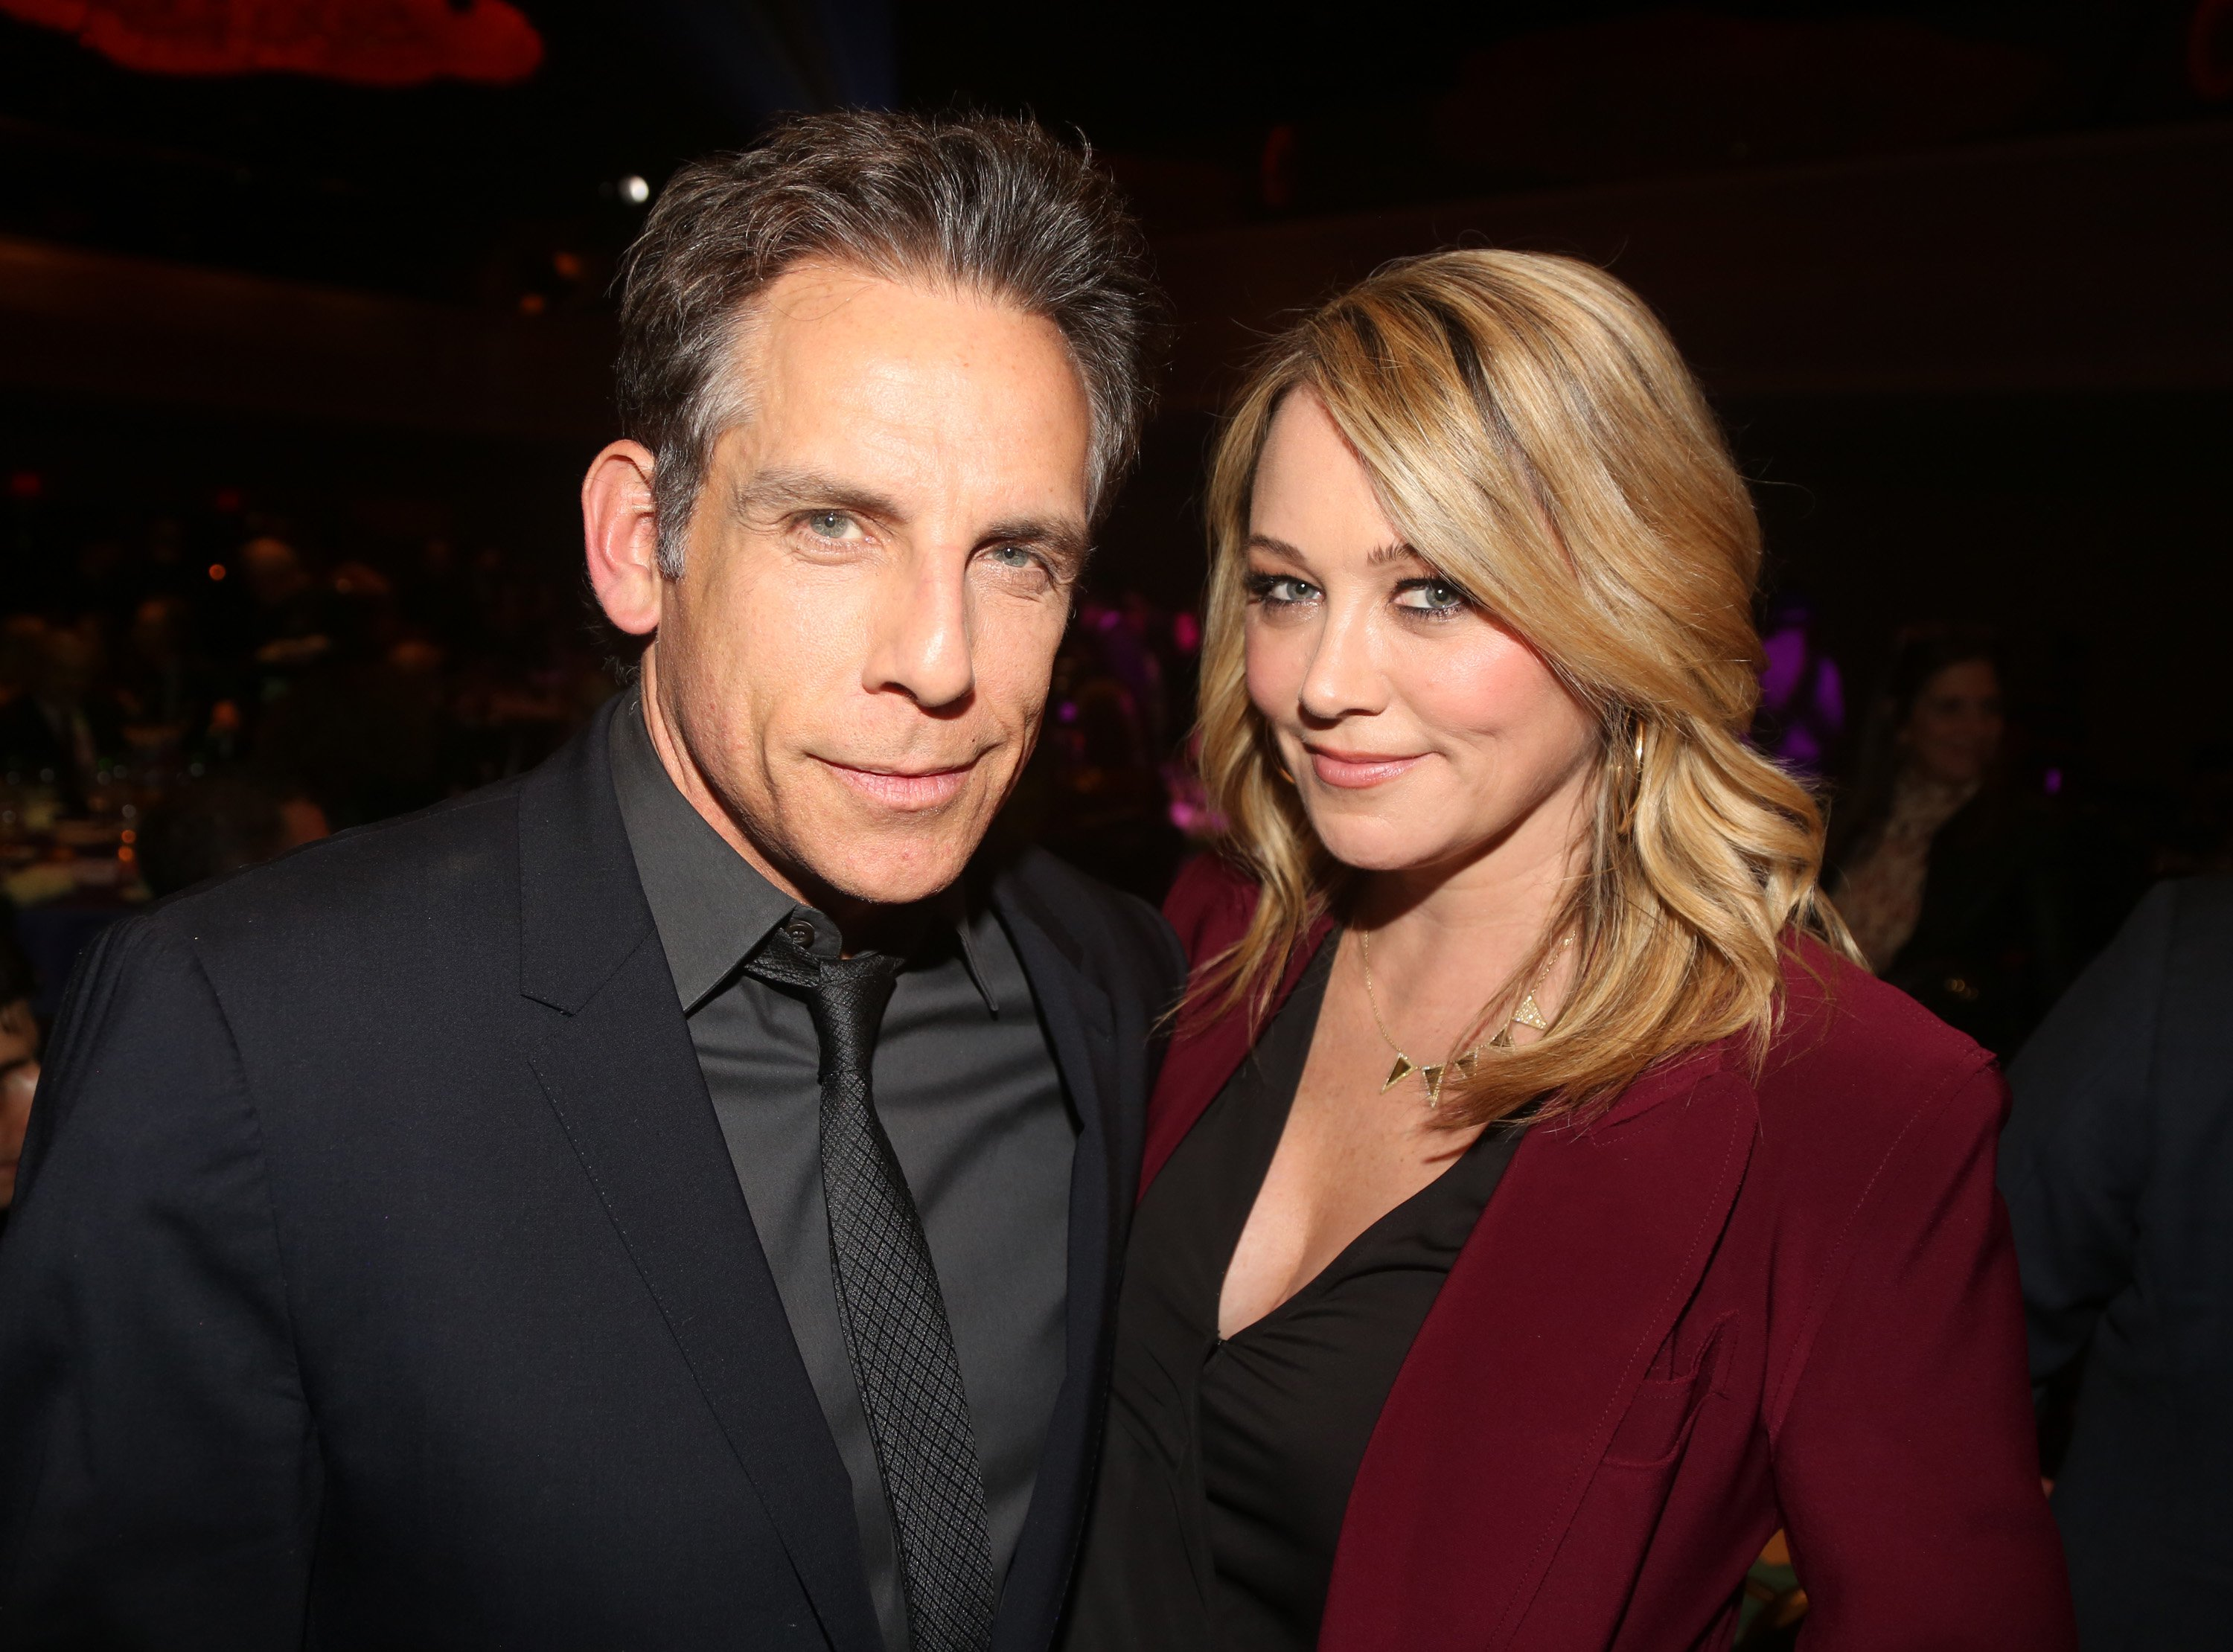 Ben Stiller and Christine Taylor pose at the 2019 Rosie's Theater Kids Fall Gala at The New York Marriott Marquis on November 18, 2019 | Photo: Getty Images